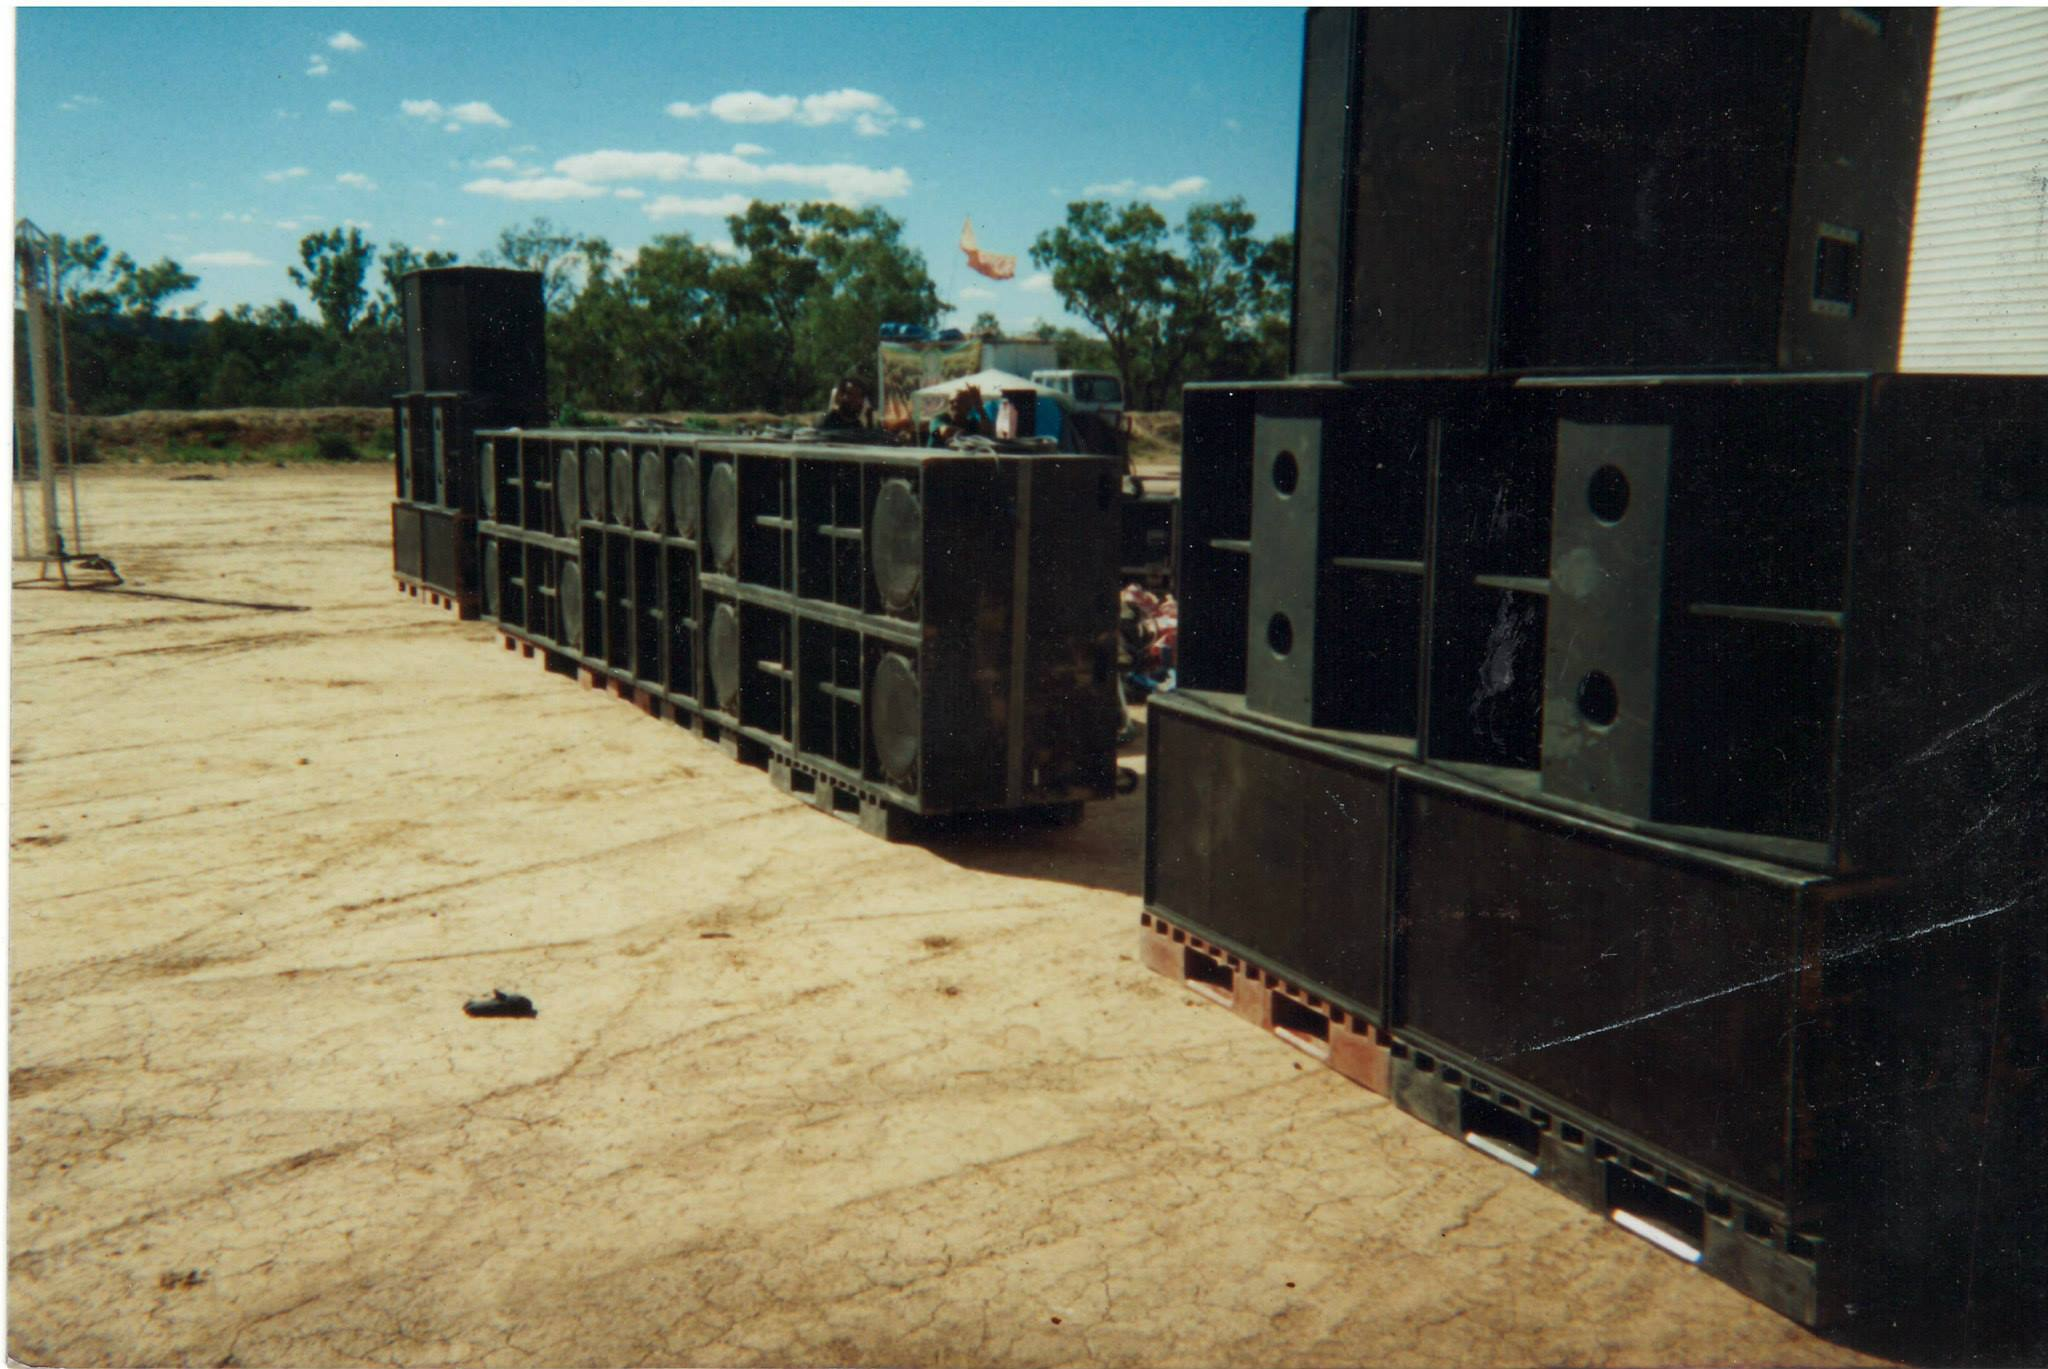 Bedlam & Negusa Negast Sound System 2000 @ Clay Pans, Alice Springs, NT.